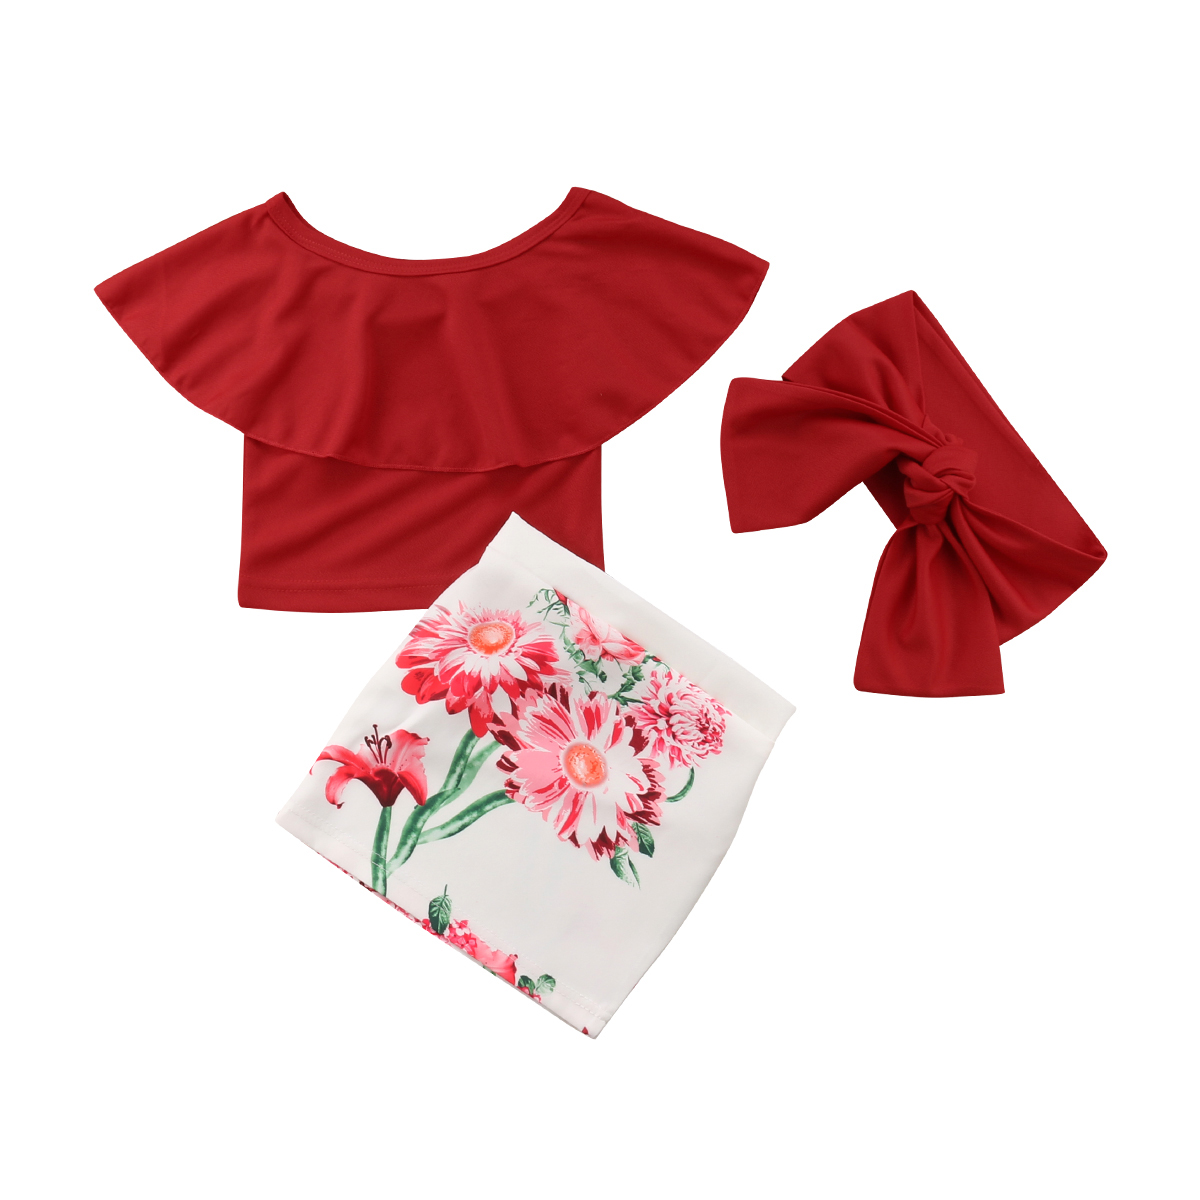 3PCS Newborn Kids Baby Girls Clothes Sets Off Shoulder Tops Floral Skirt Cotton Casual Headbands Outfits Girl 1-6T